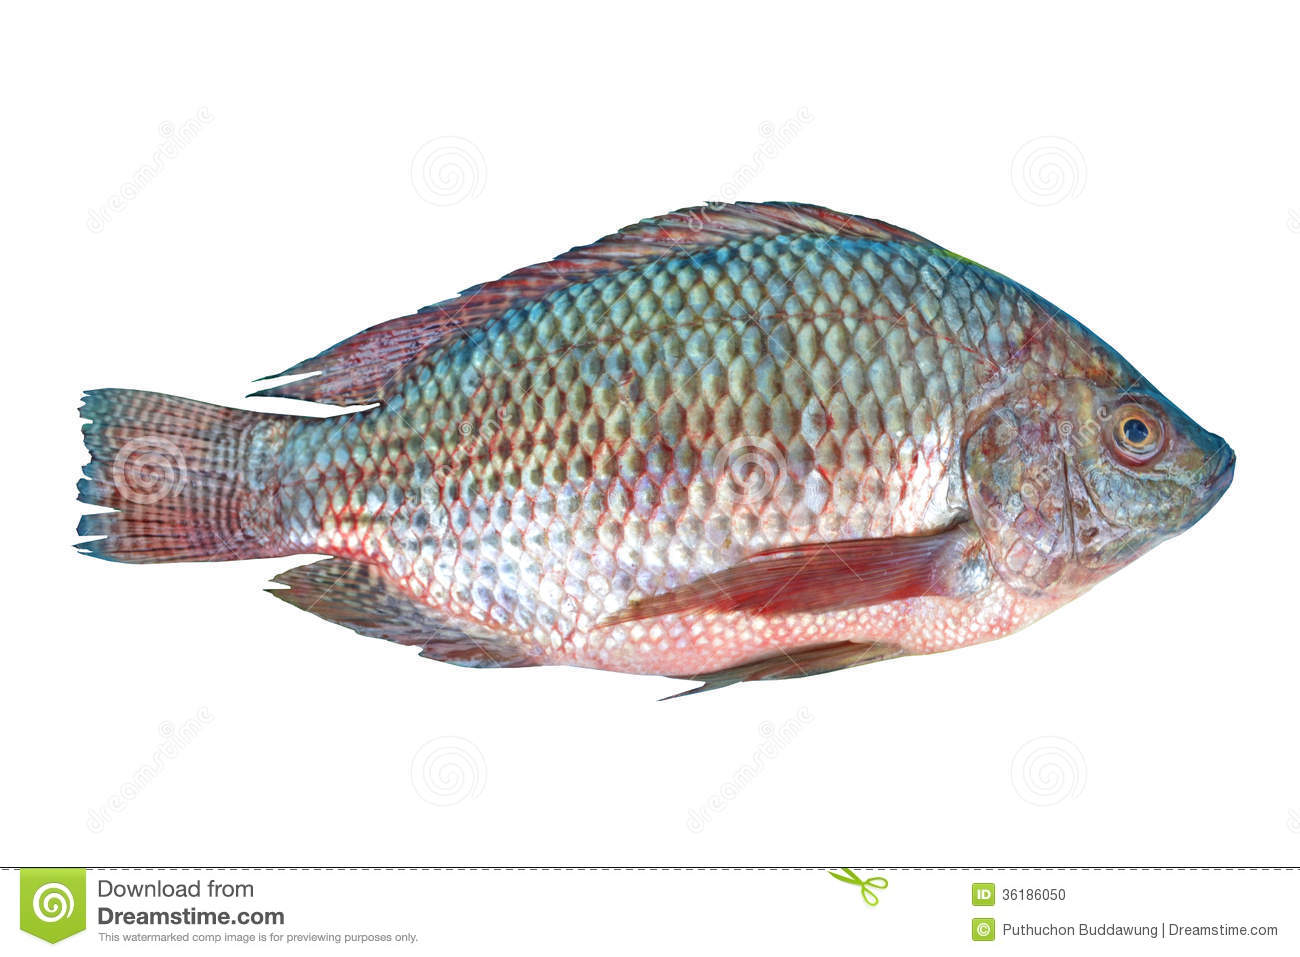 Nile tilapia fish stock photo image 36186050 for What is tilapia fish